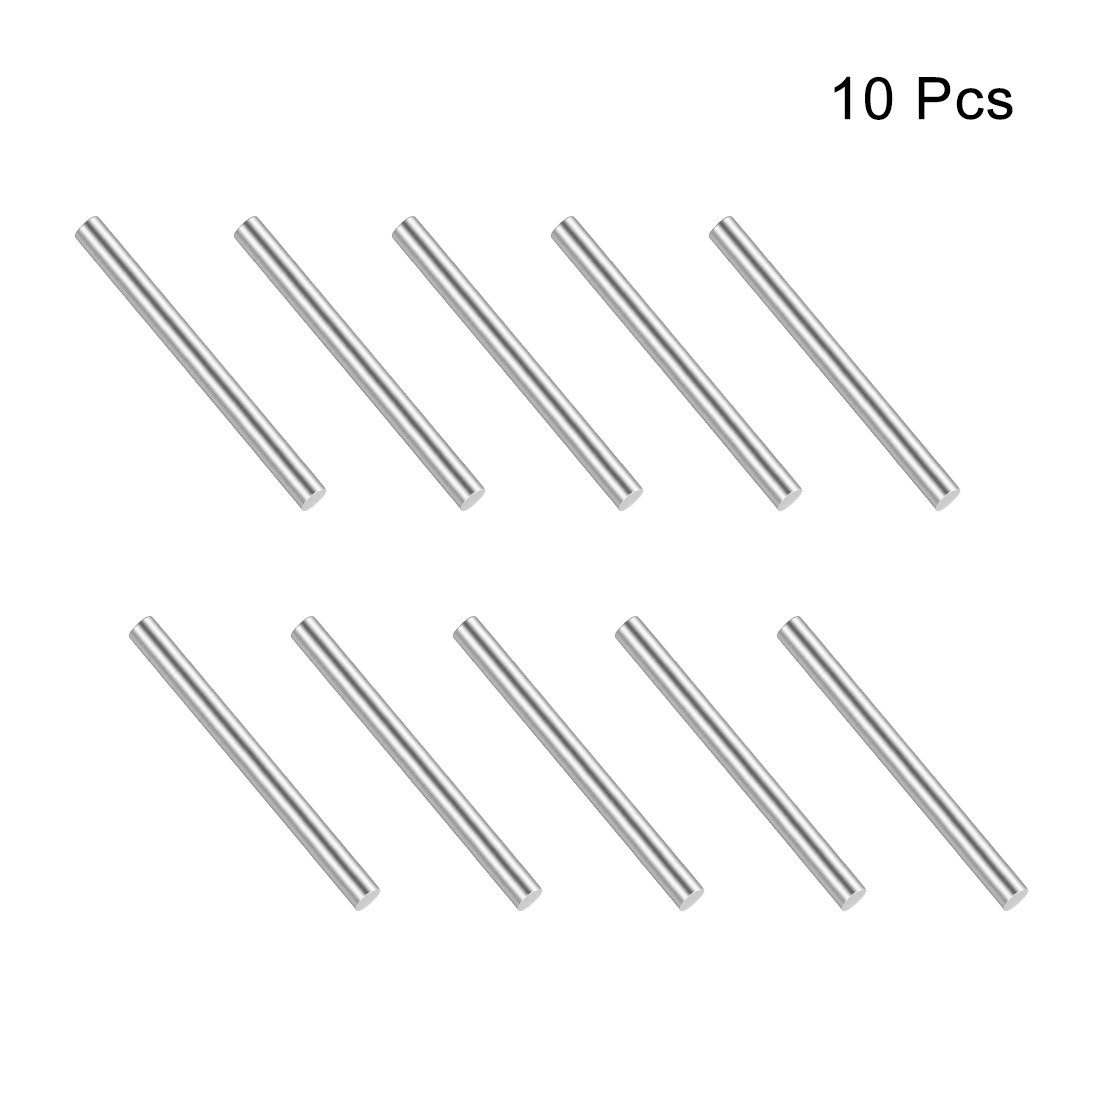 sourcing map Stainless Steel Solid Round Rods Metal Lathe Bar Stock for DIY Craft 50mmx2mm 10pcs